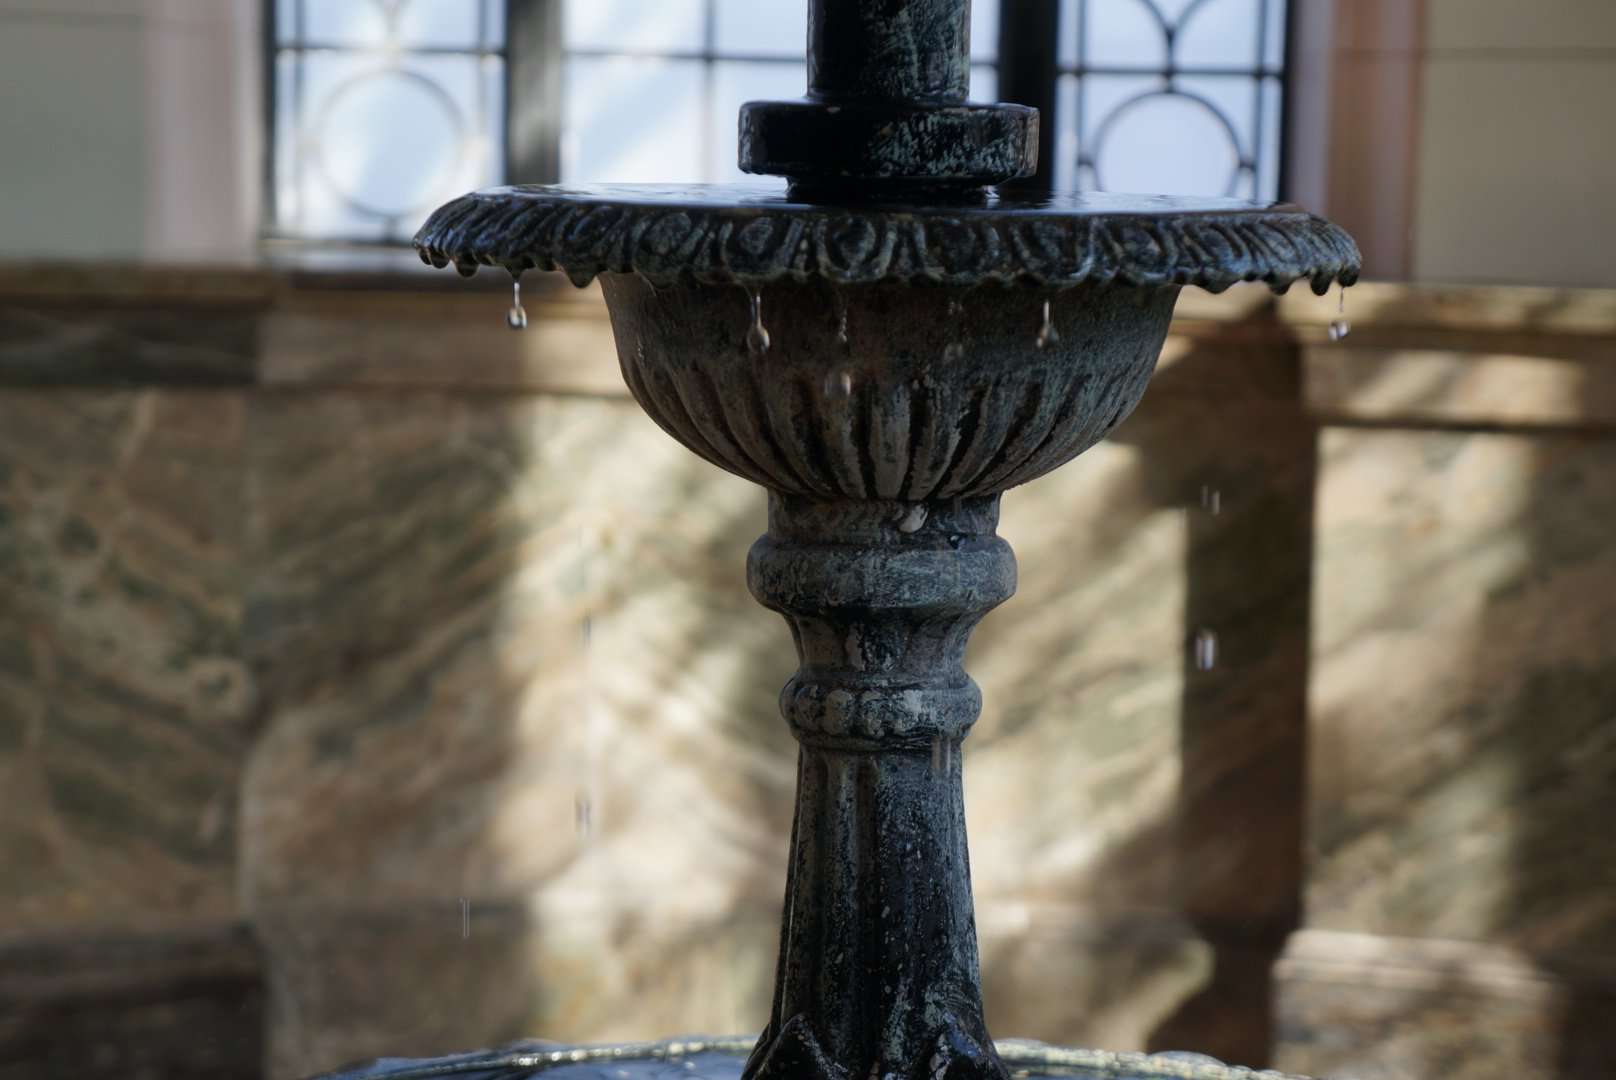 Casa Loma - Fountain